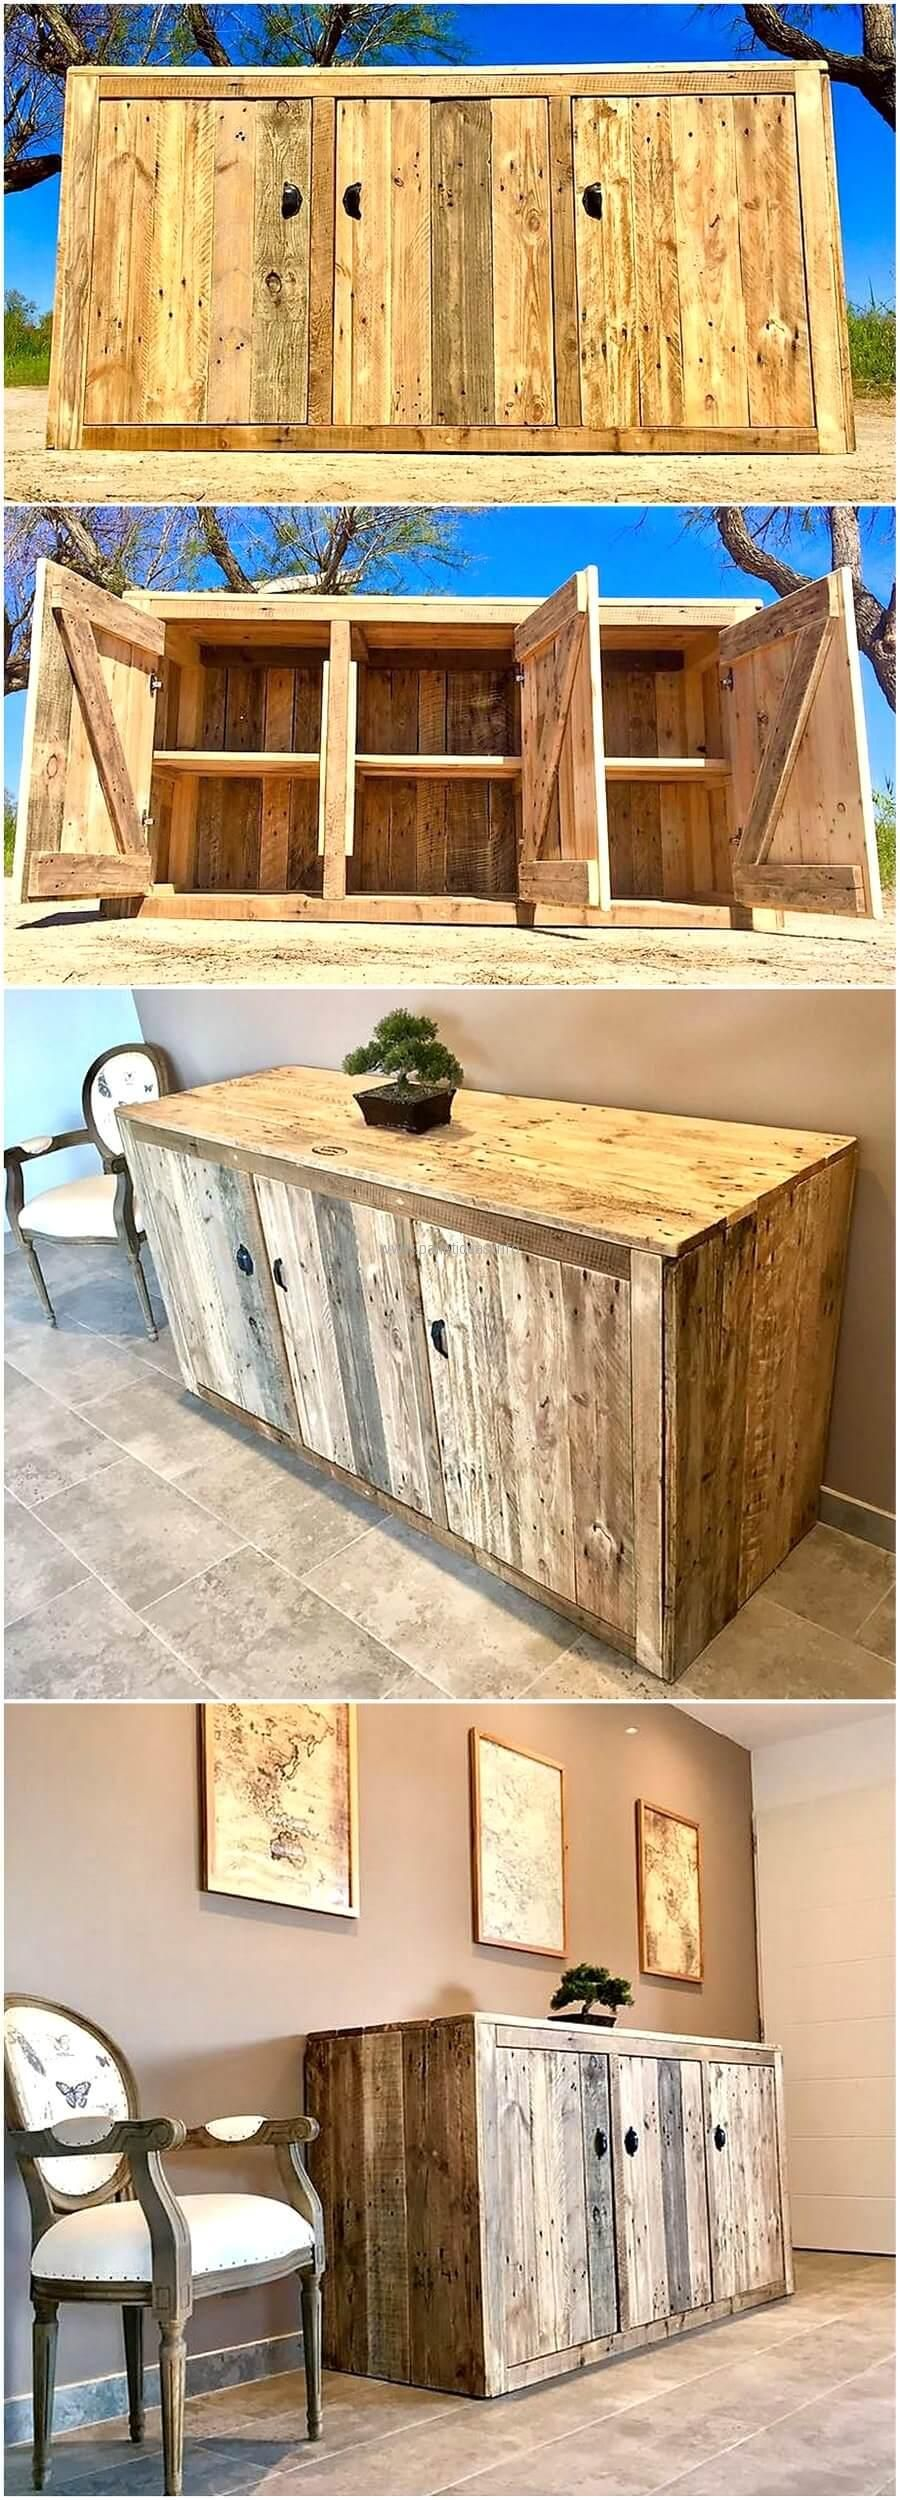 recycled pallets entryway giant table with drawers home ideas pinterest m bel palette und. Black Bedroom Furniture Sets. Home Design Ideas